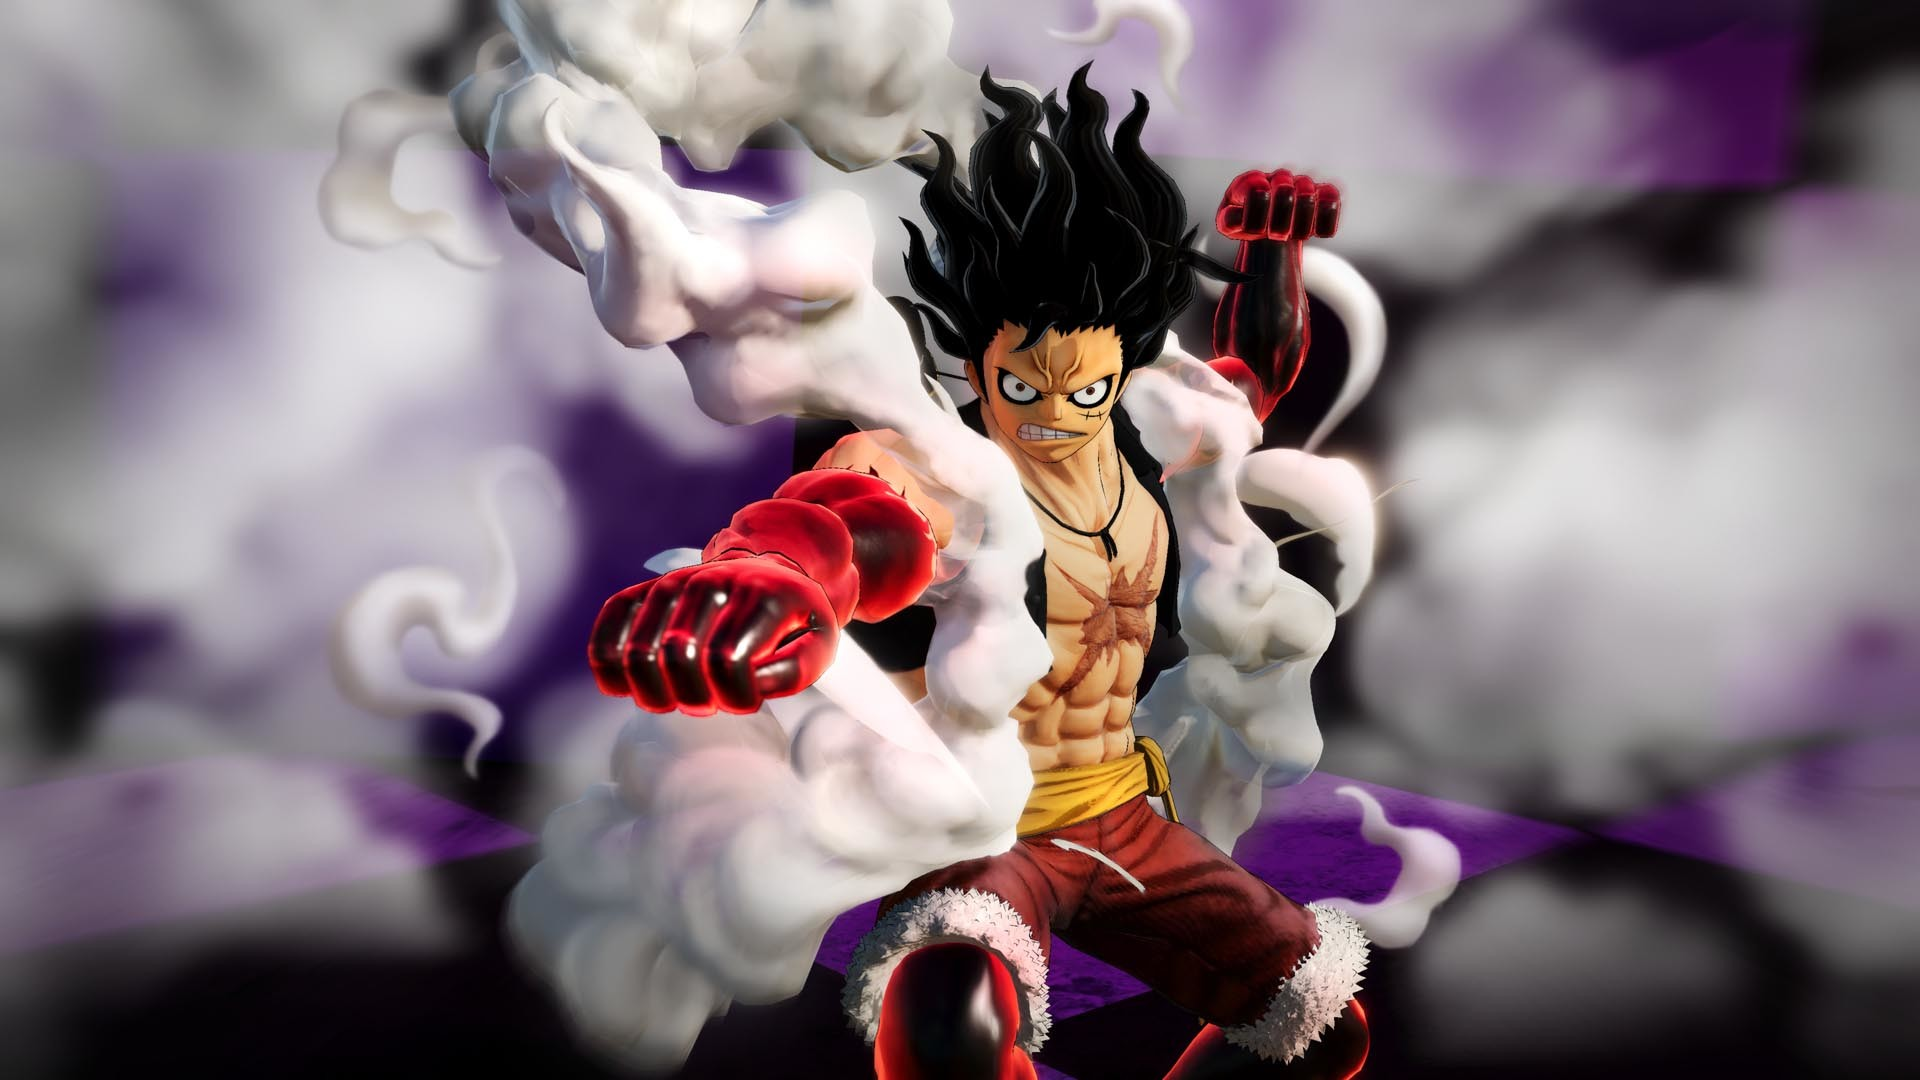 ONE PIECE: PIRATE WARRIORS 4 DELUXE (Steam Gift RU) 🔥